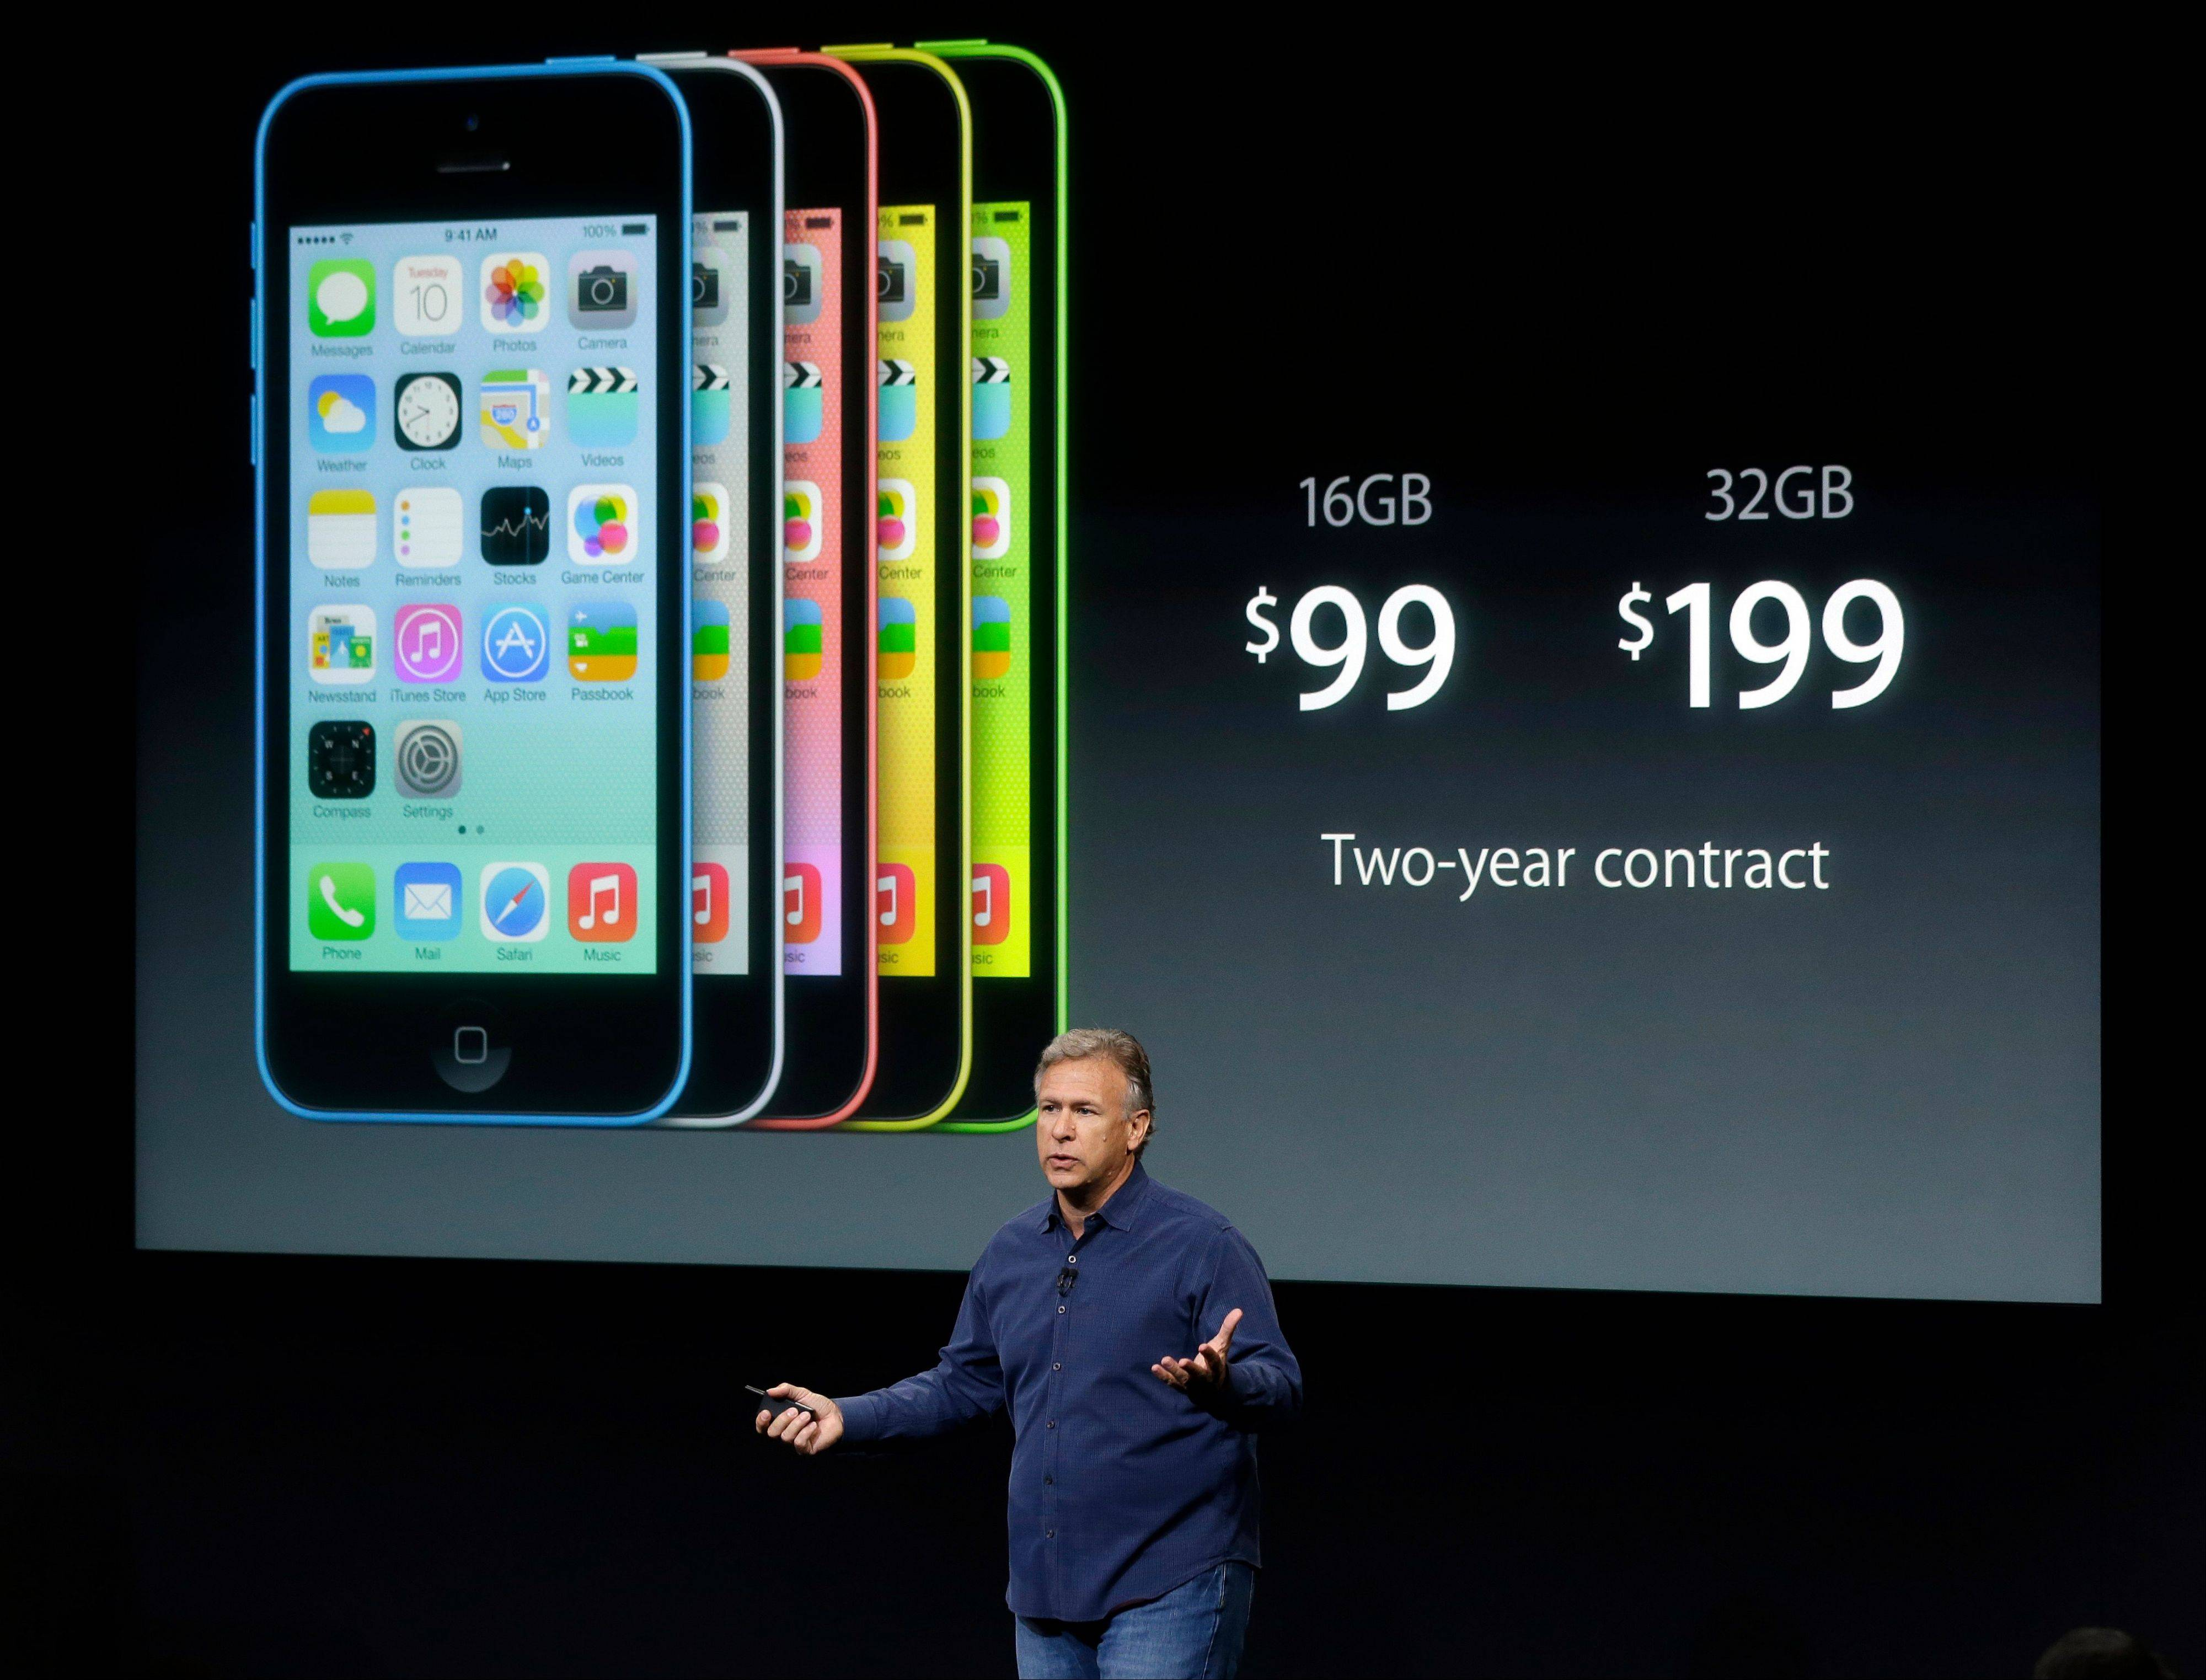 Phil Schiller, Apple�s senior vice president of worldwide product marketing, discusses the new iPhone 5c in Cupertino, Calif., Tuesday. The new products Apple debuted Tuesday apparently did not impress investors on Wednesday.